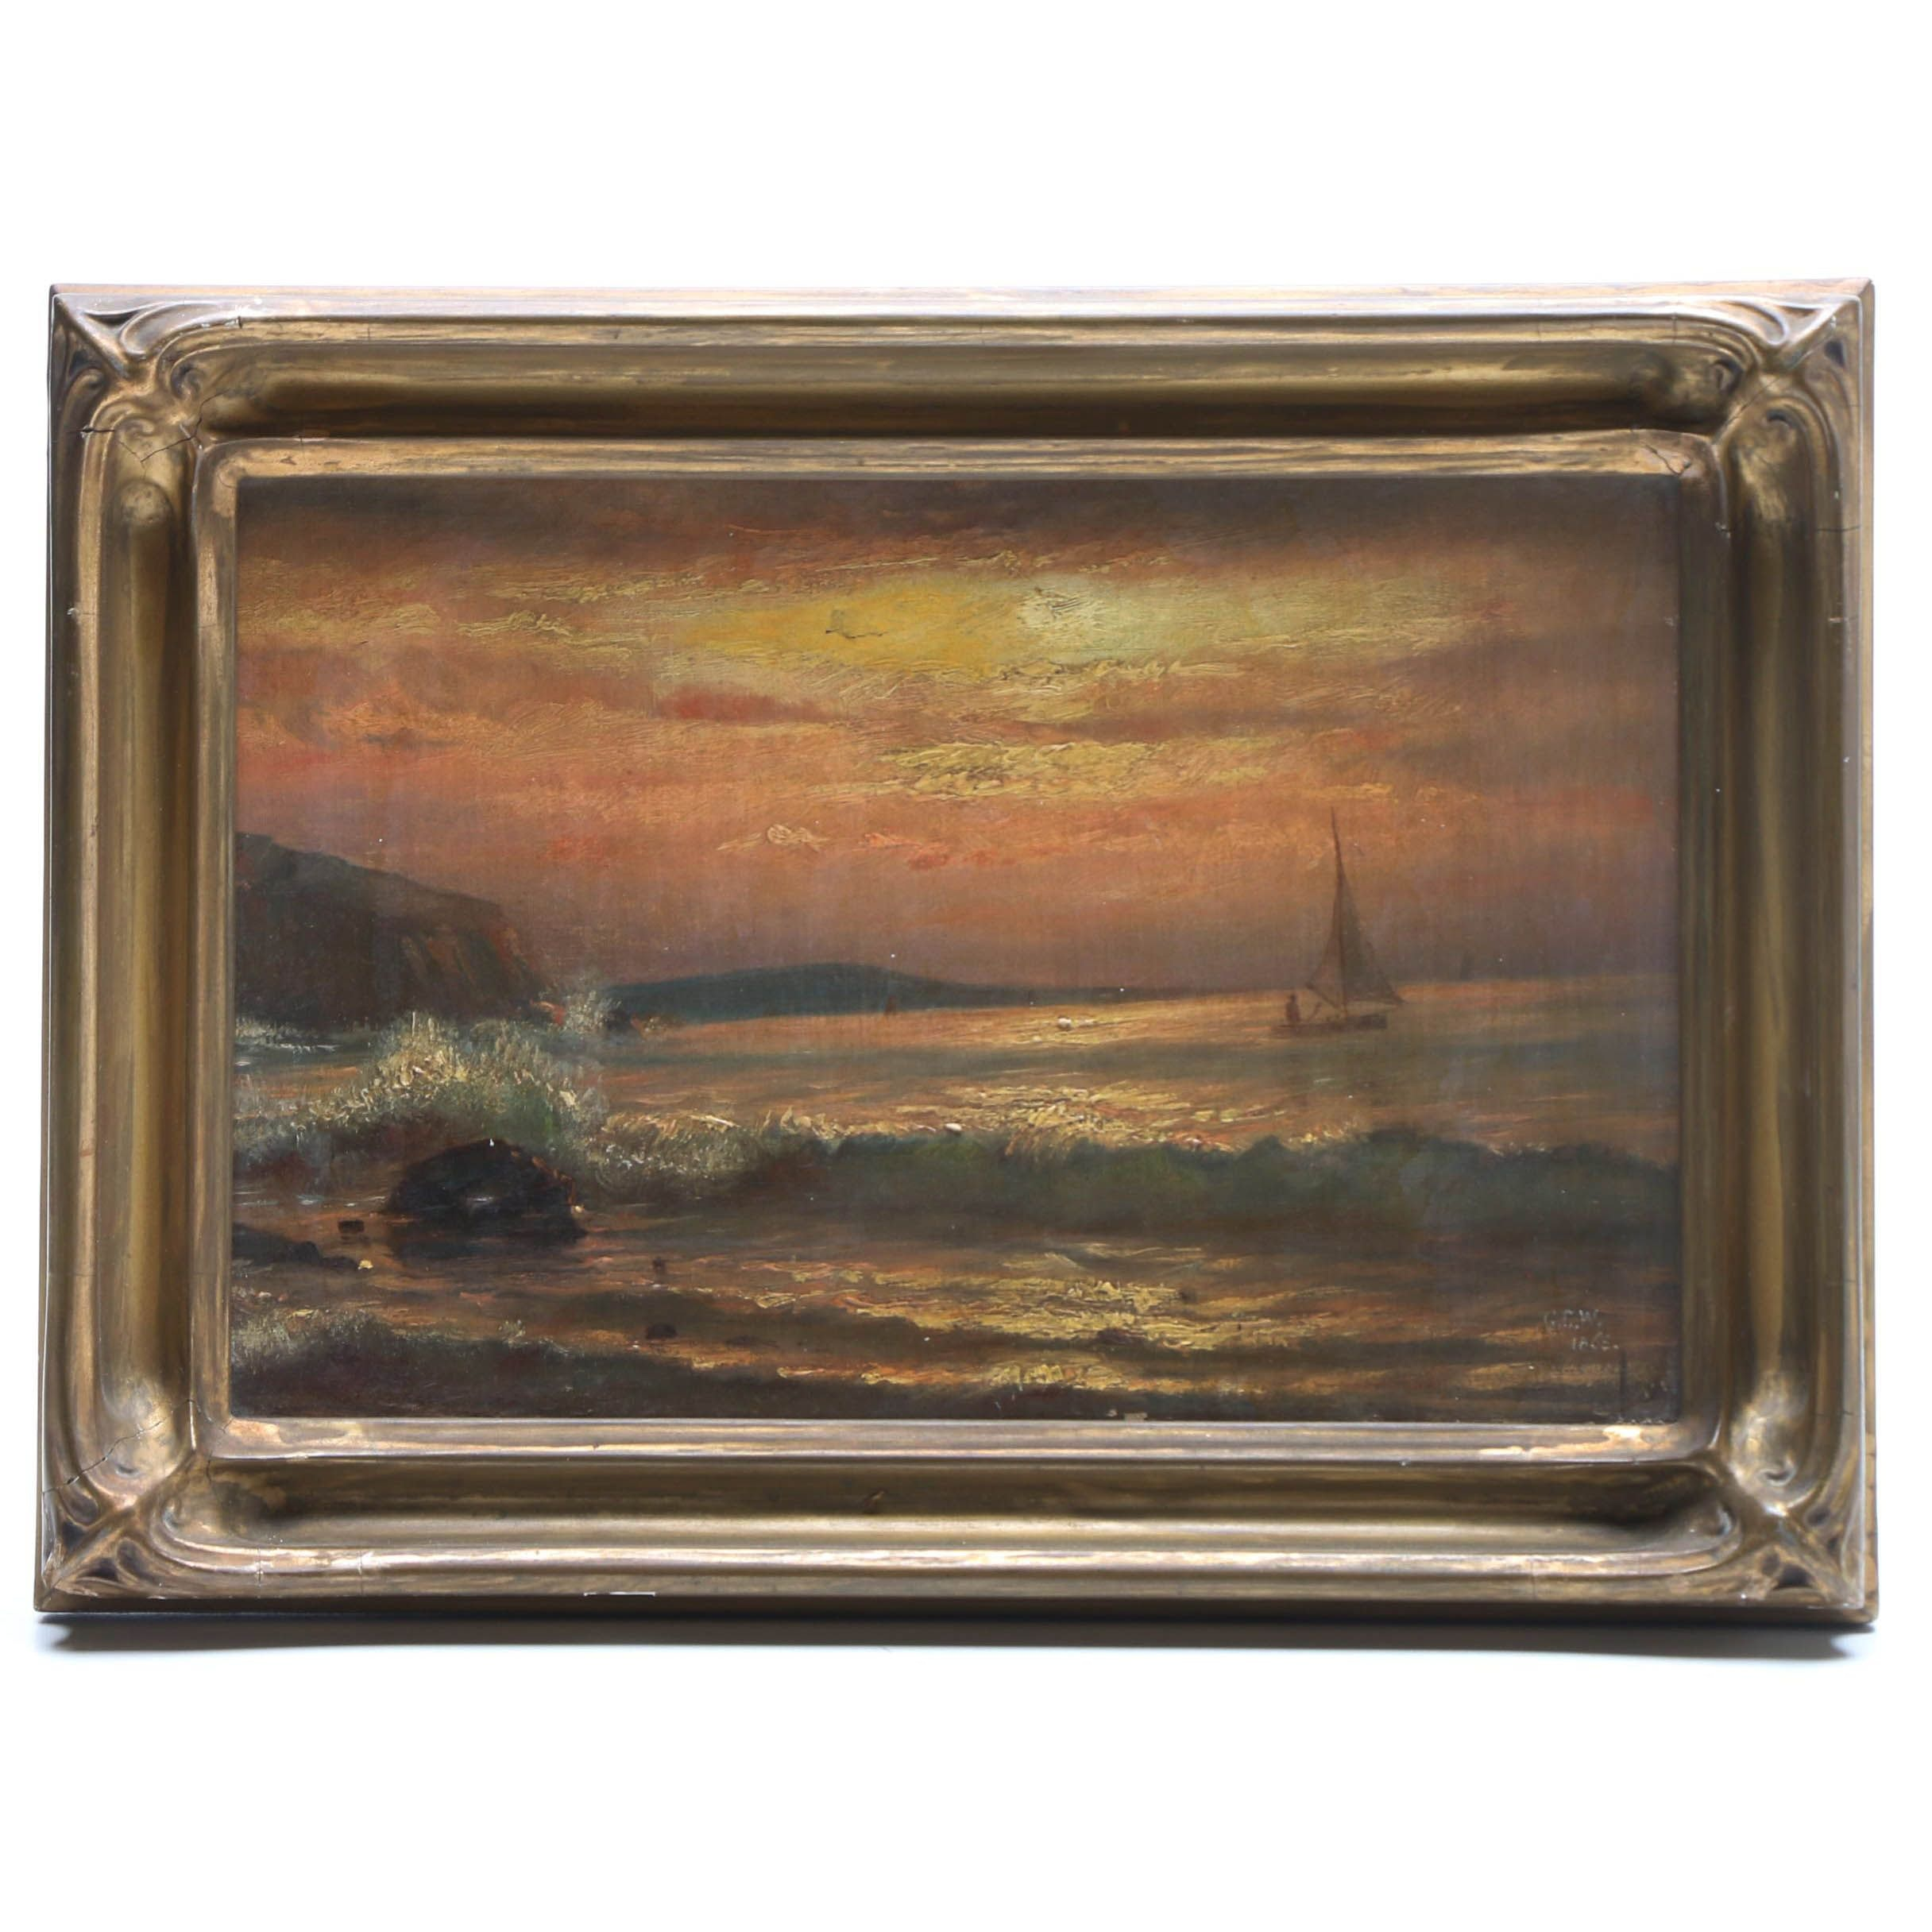 G. C. W. 1865 Coastal Landscape Oil Painting